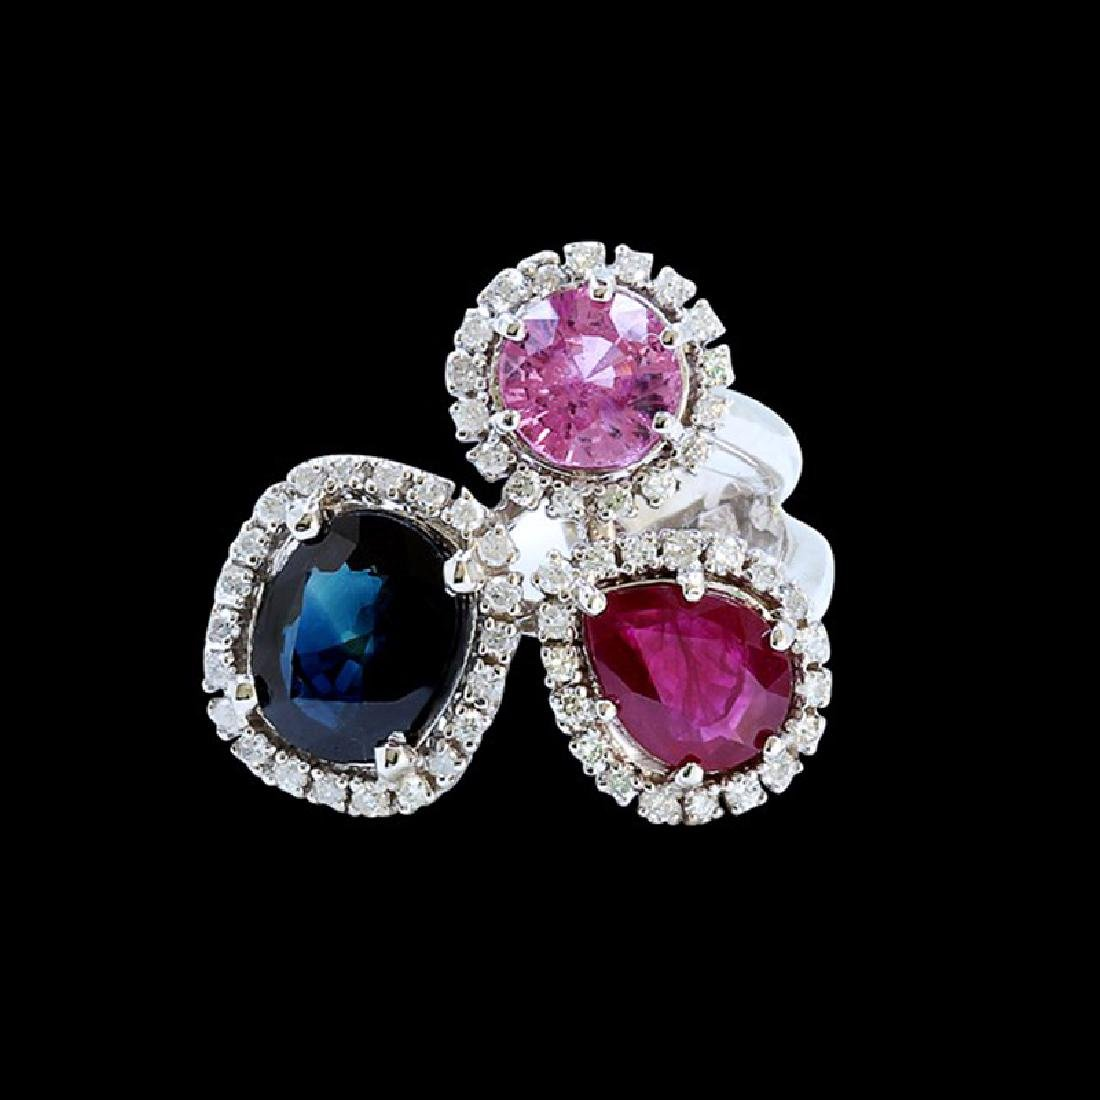 NATURAL 2.29CT CEYLON PINK SAPPHIRE AND 1.30CT RUBY 14k